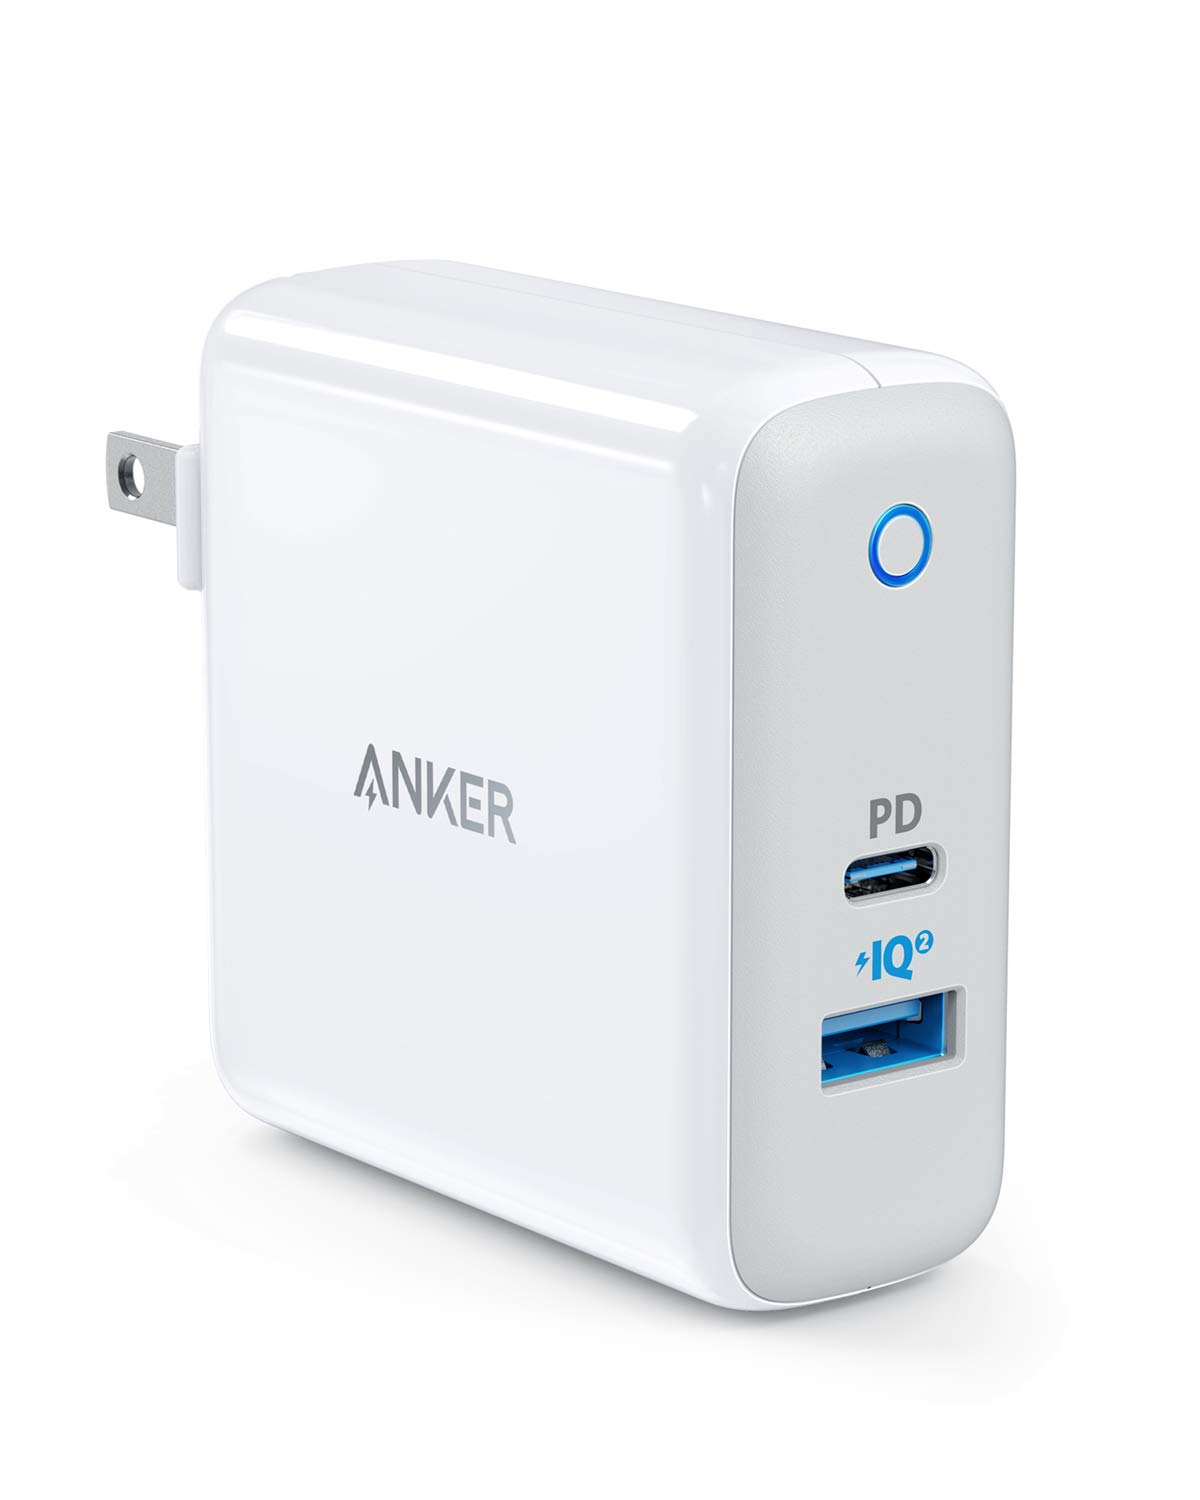 USB C Charger, Anker PowerPort II UL Certified 49.5W Wall Charger with Foldable Plug, One 30W Power Delivery Port for MacBook Air/iPad Pro 2018, iPhone XS/Max/XR/X/8/+, PowerIQ 2.0 for S10/S9 and More by Anker